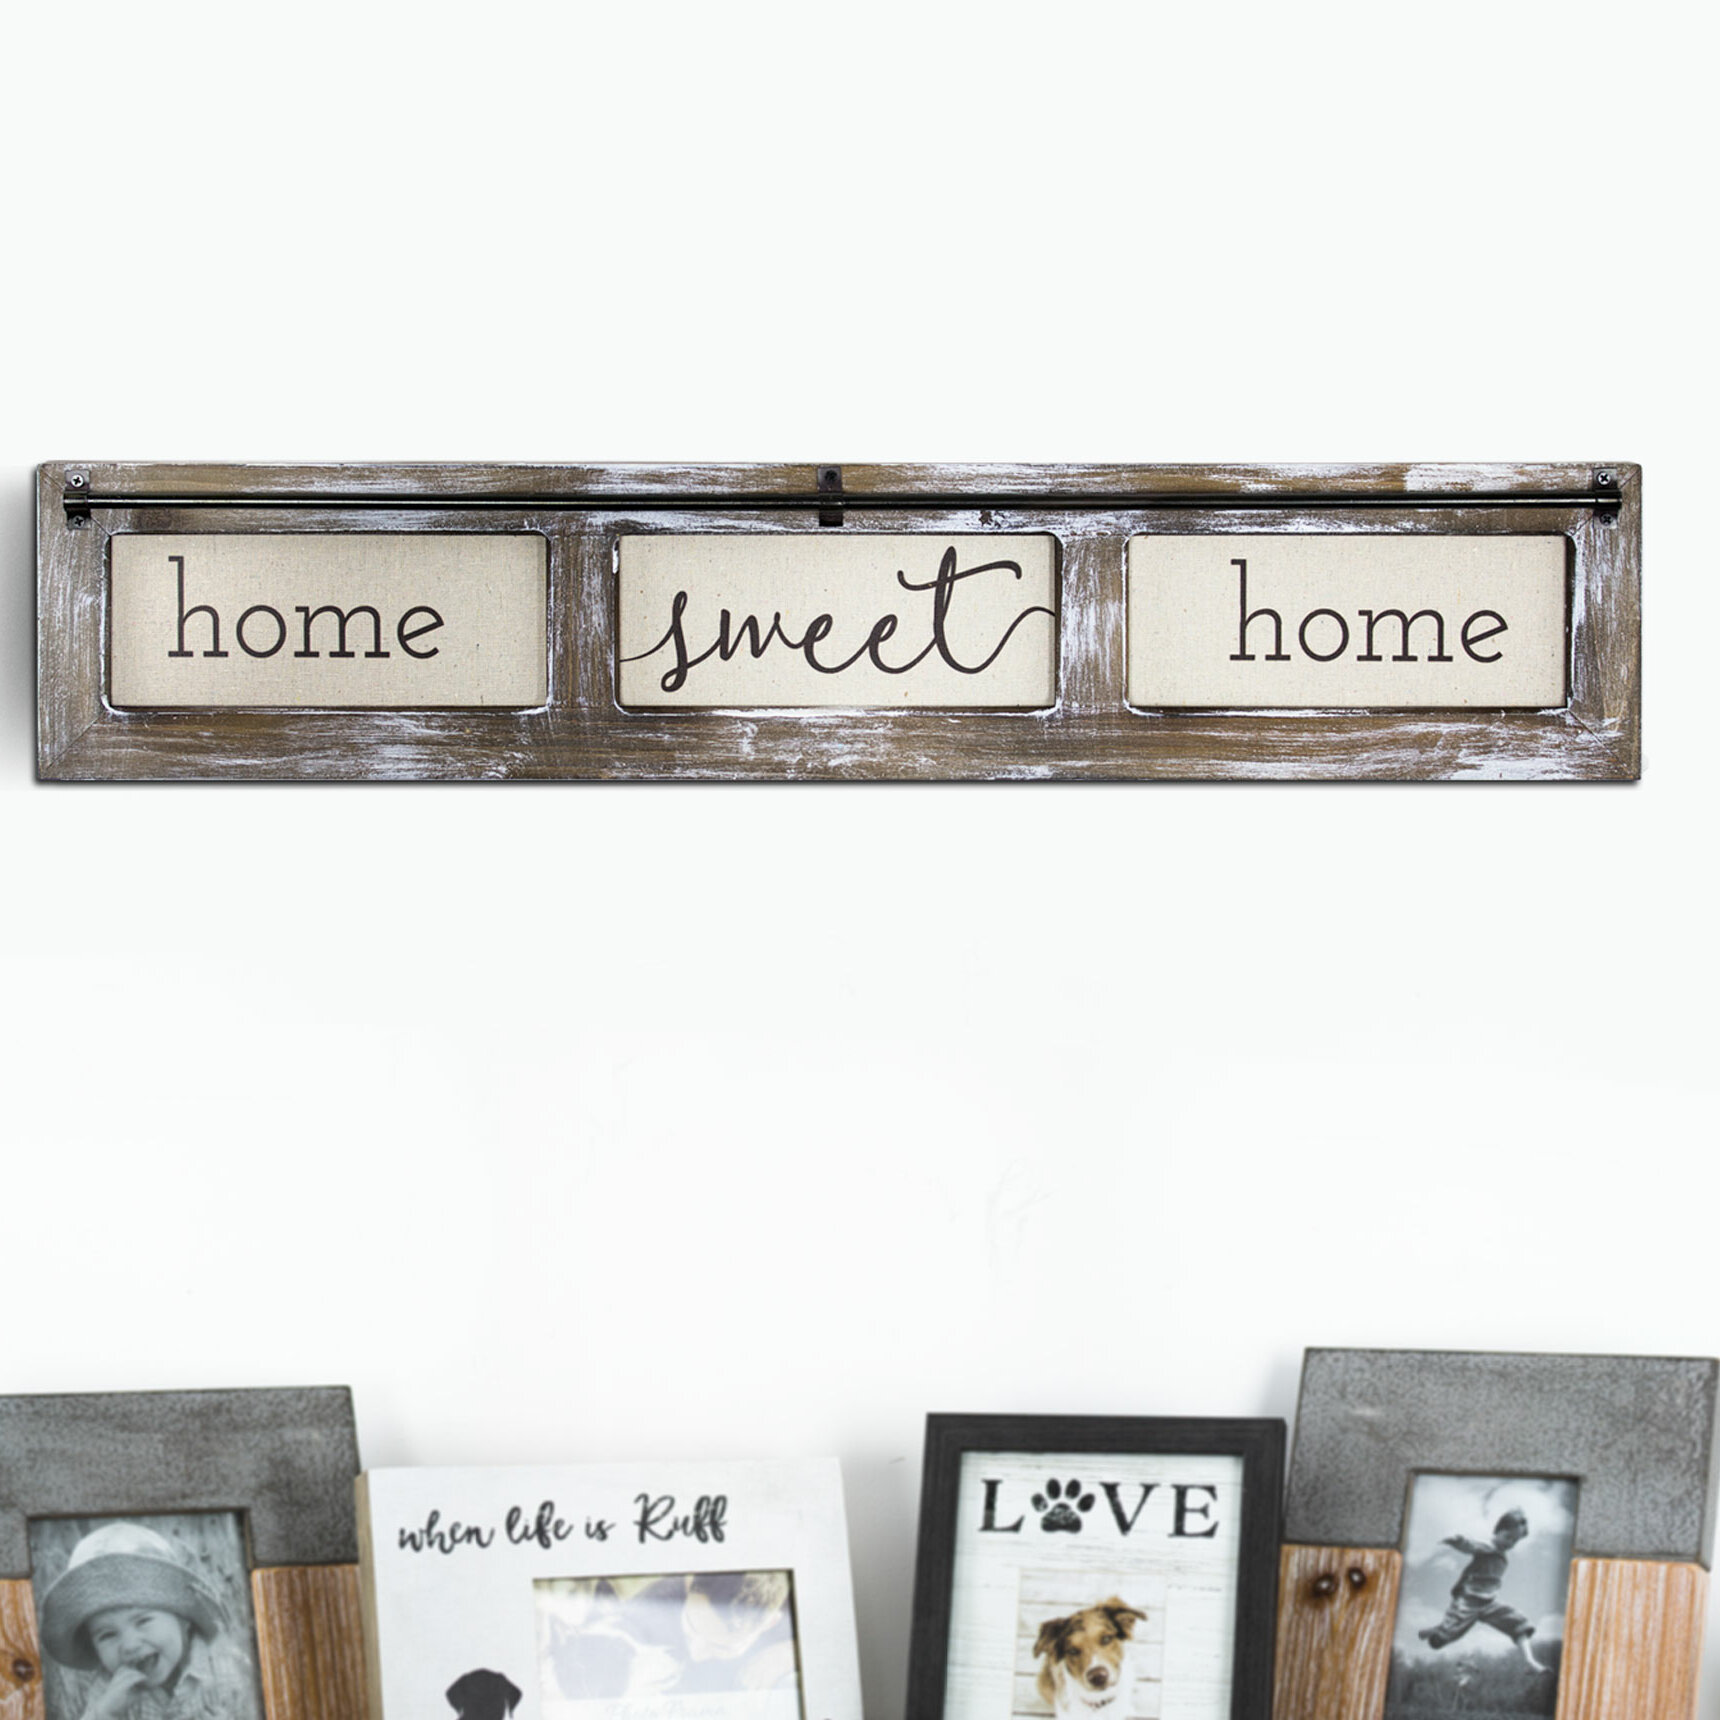 New Country Style Wooden Block Set Decor Love Faith Home sweet home Sign Blocks